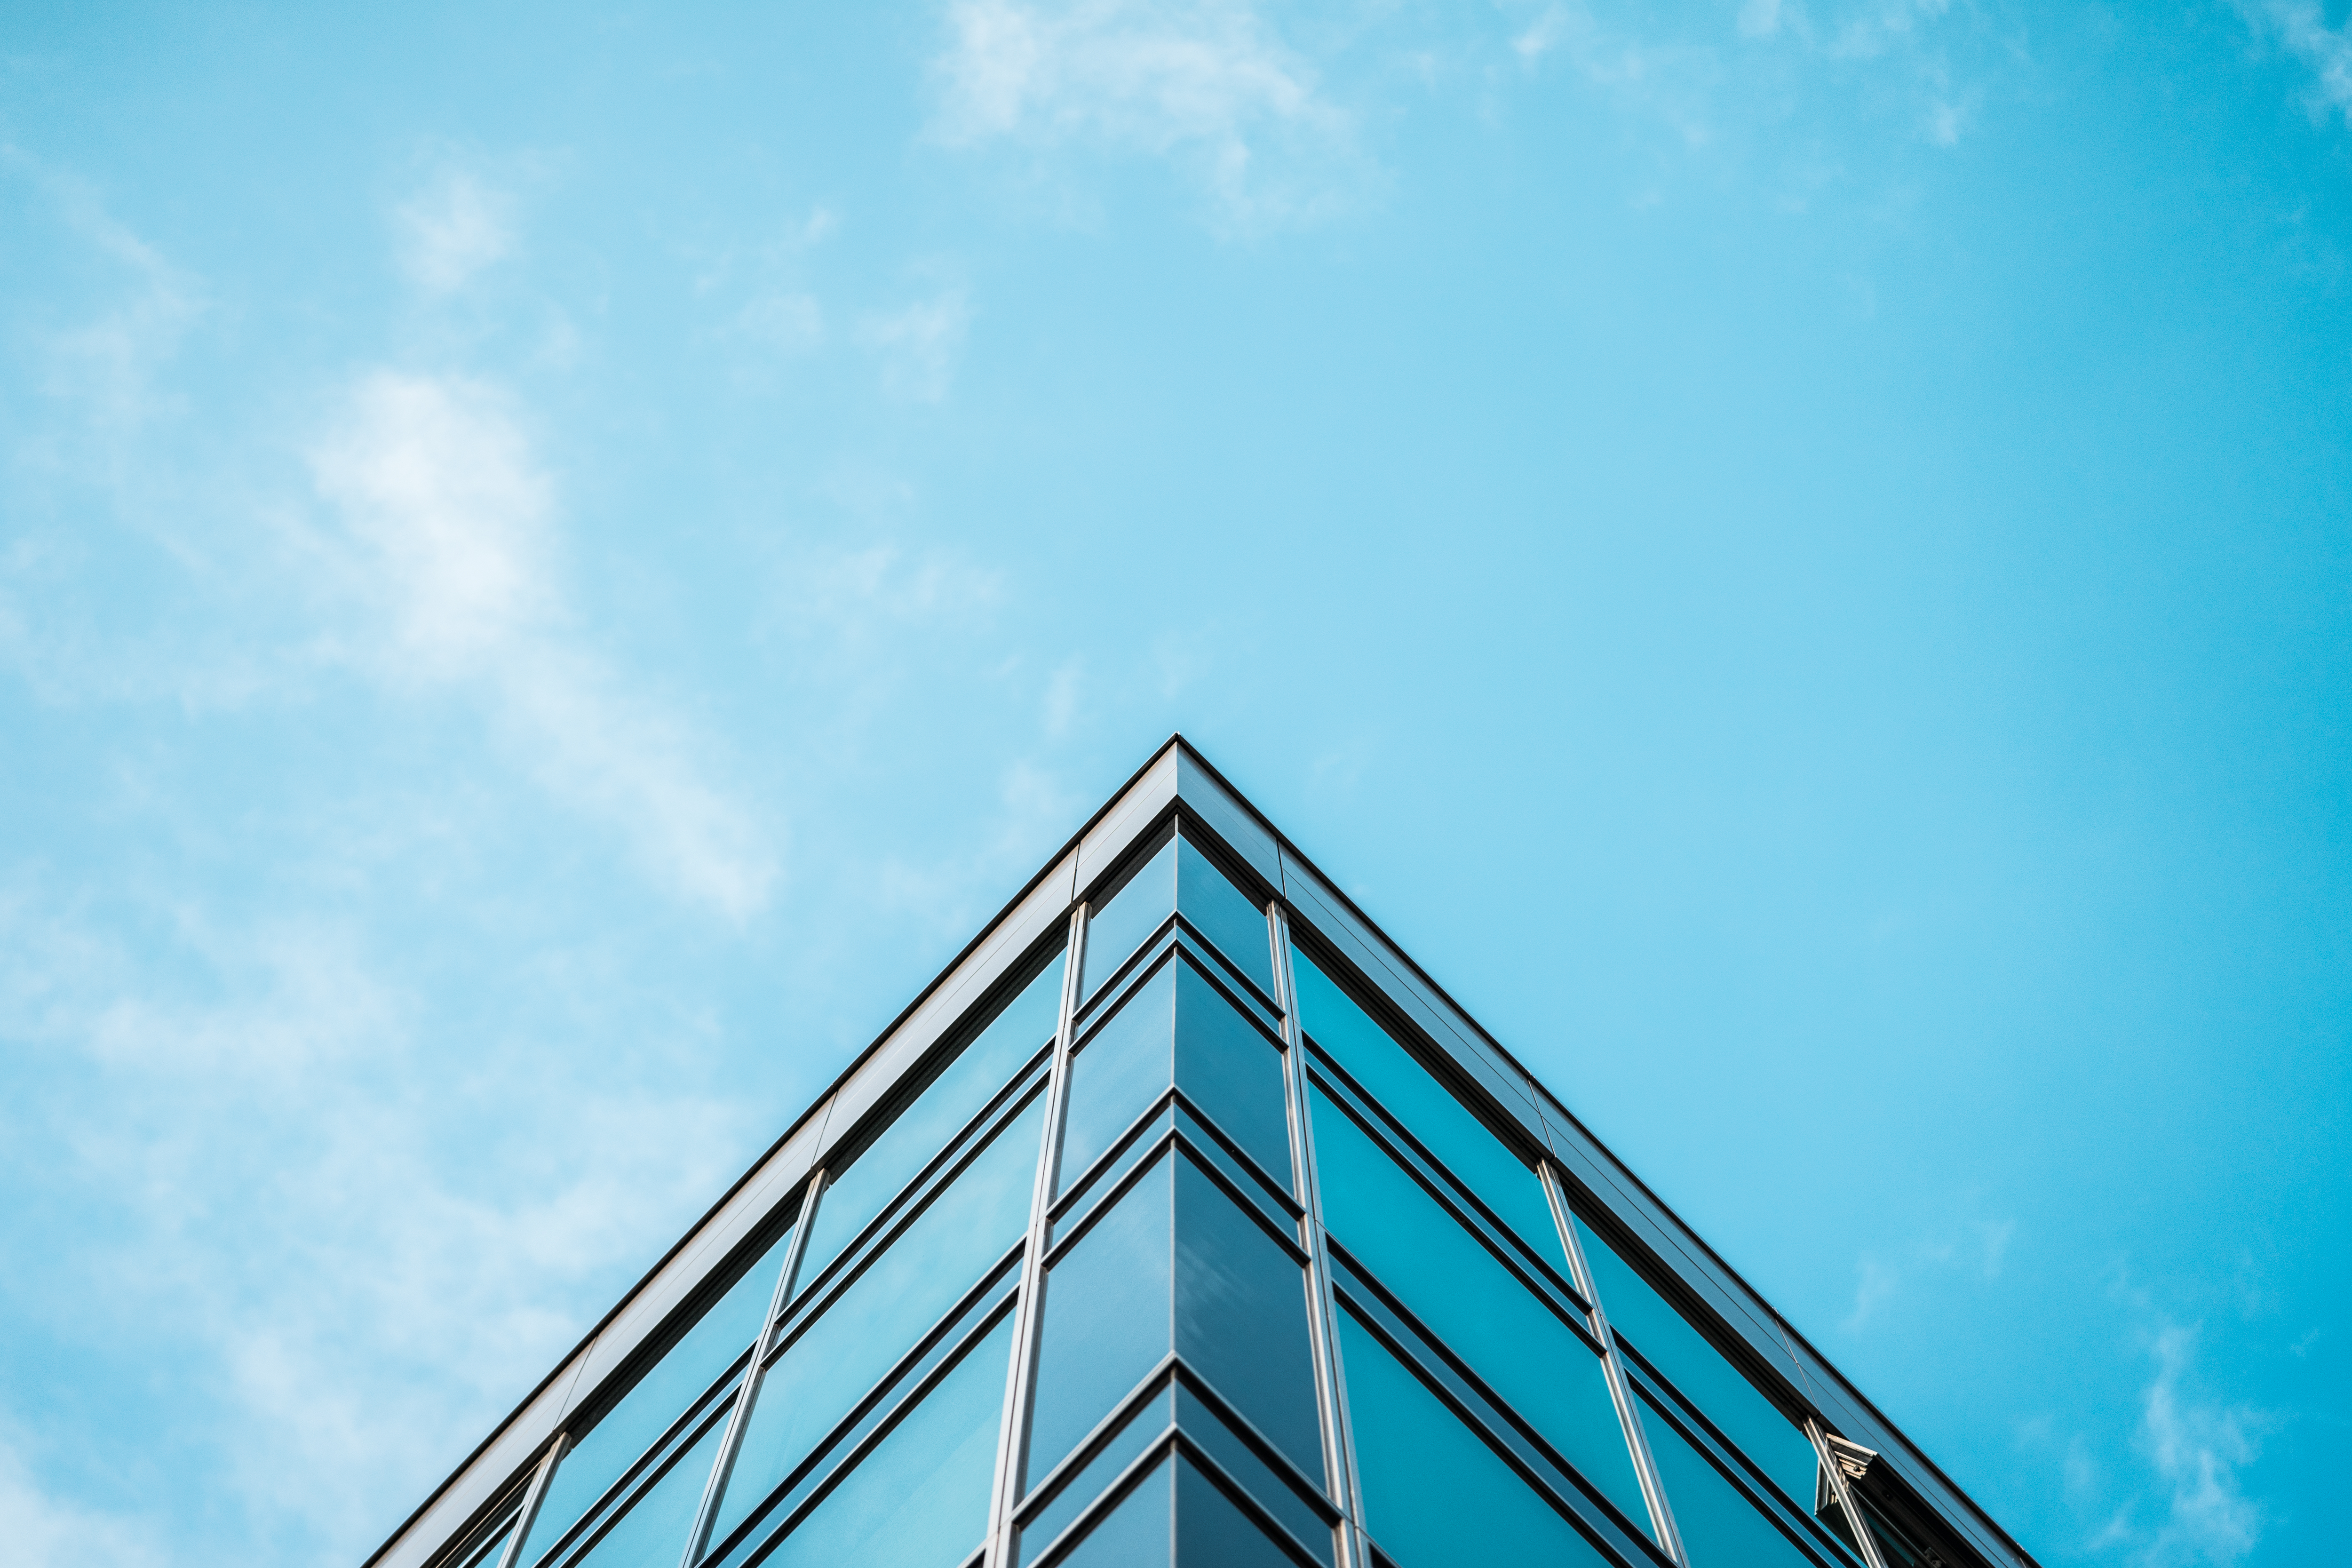 business-skyscraper-office-building-and-blue-sky-picjumbo-com